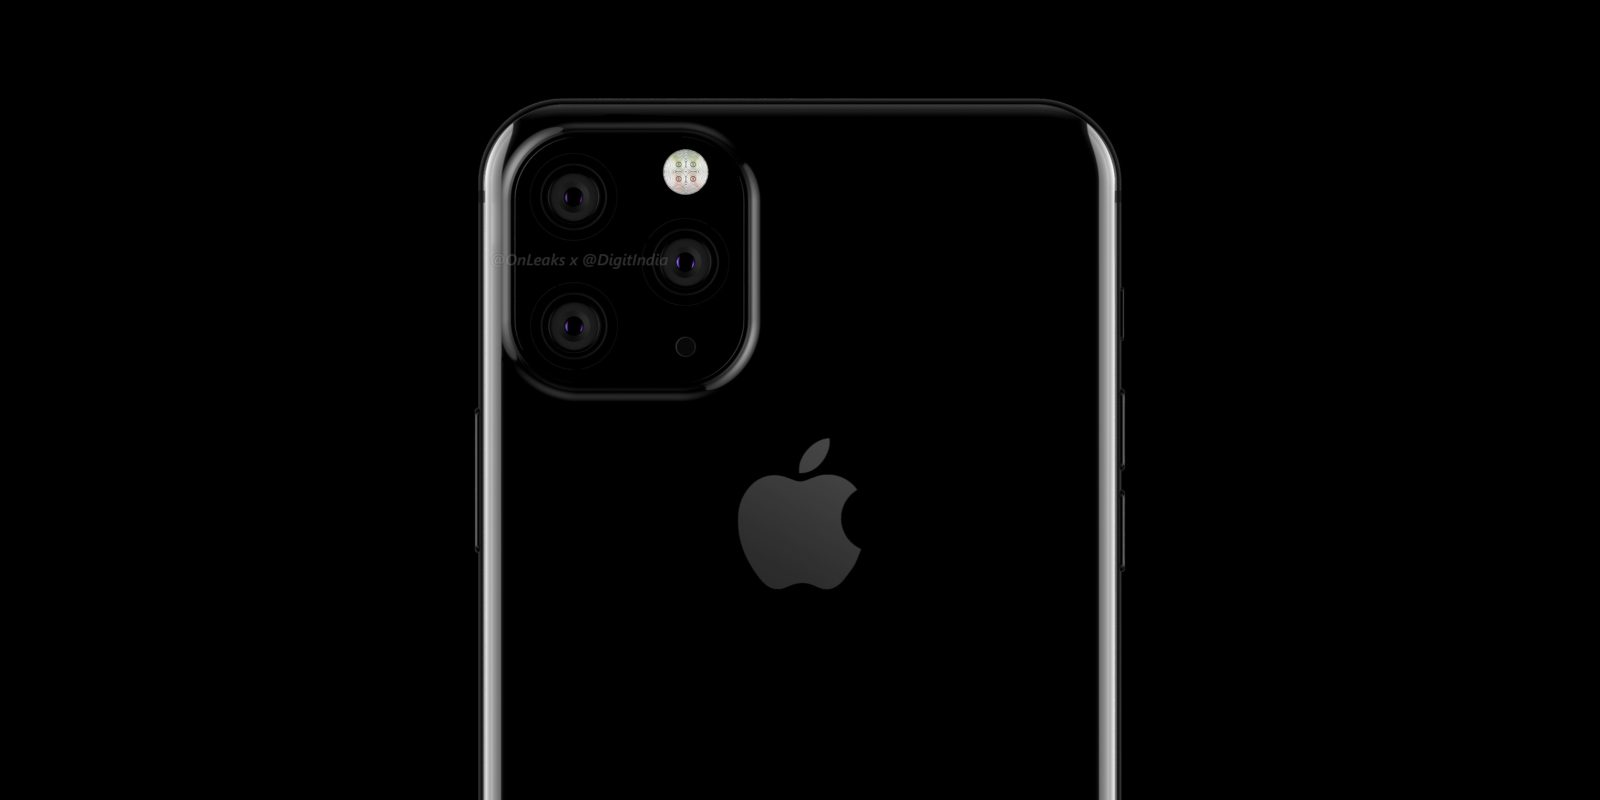 New Iphone 11 Come with Triple camera